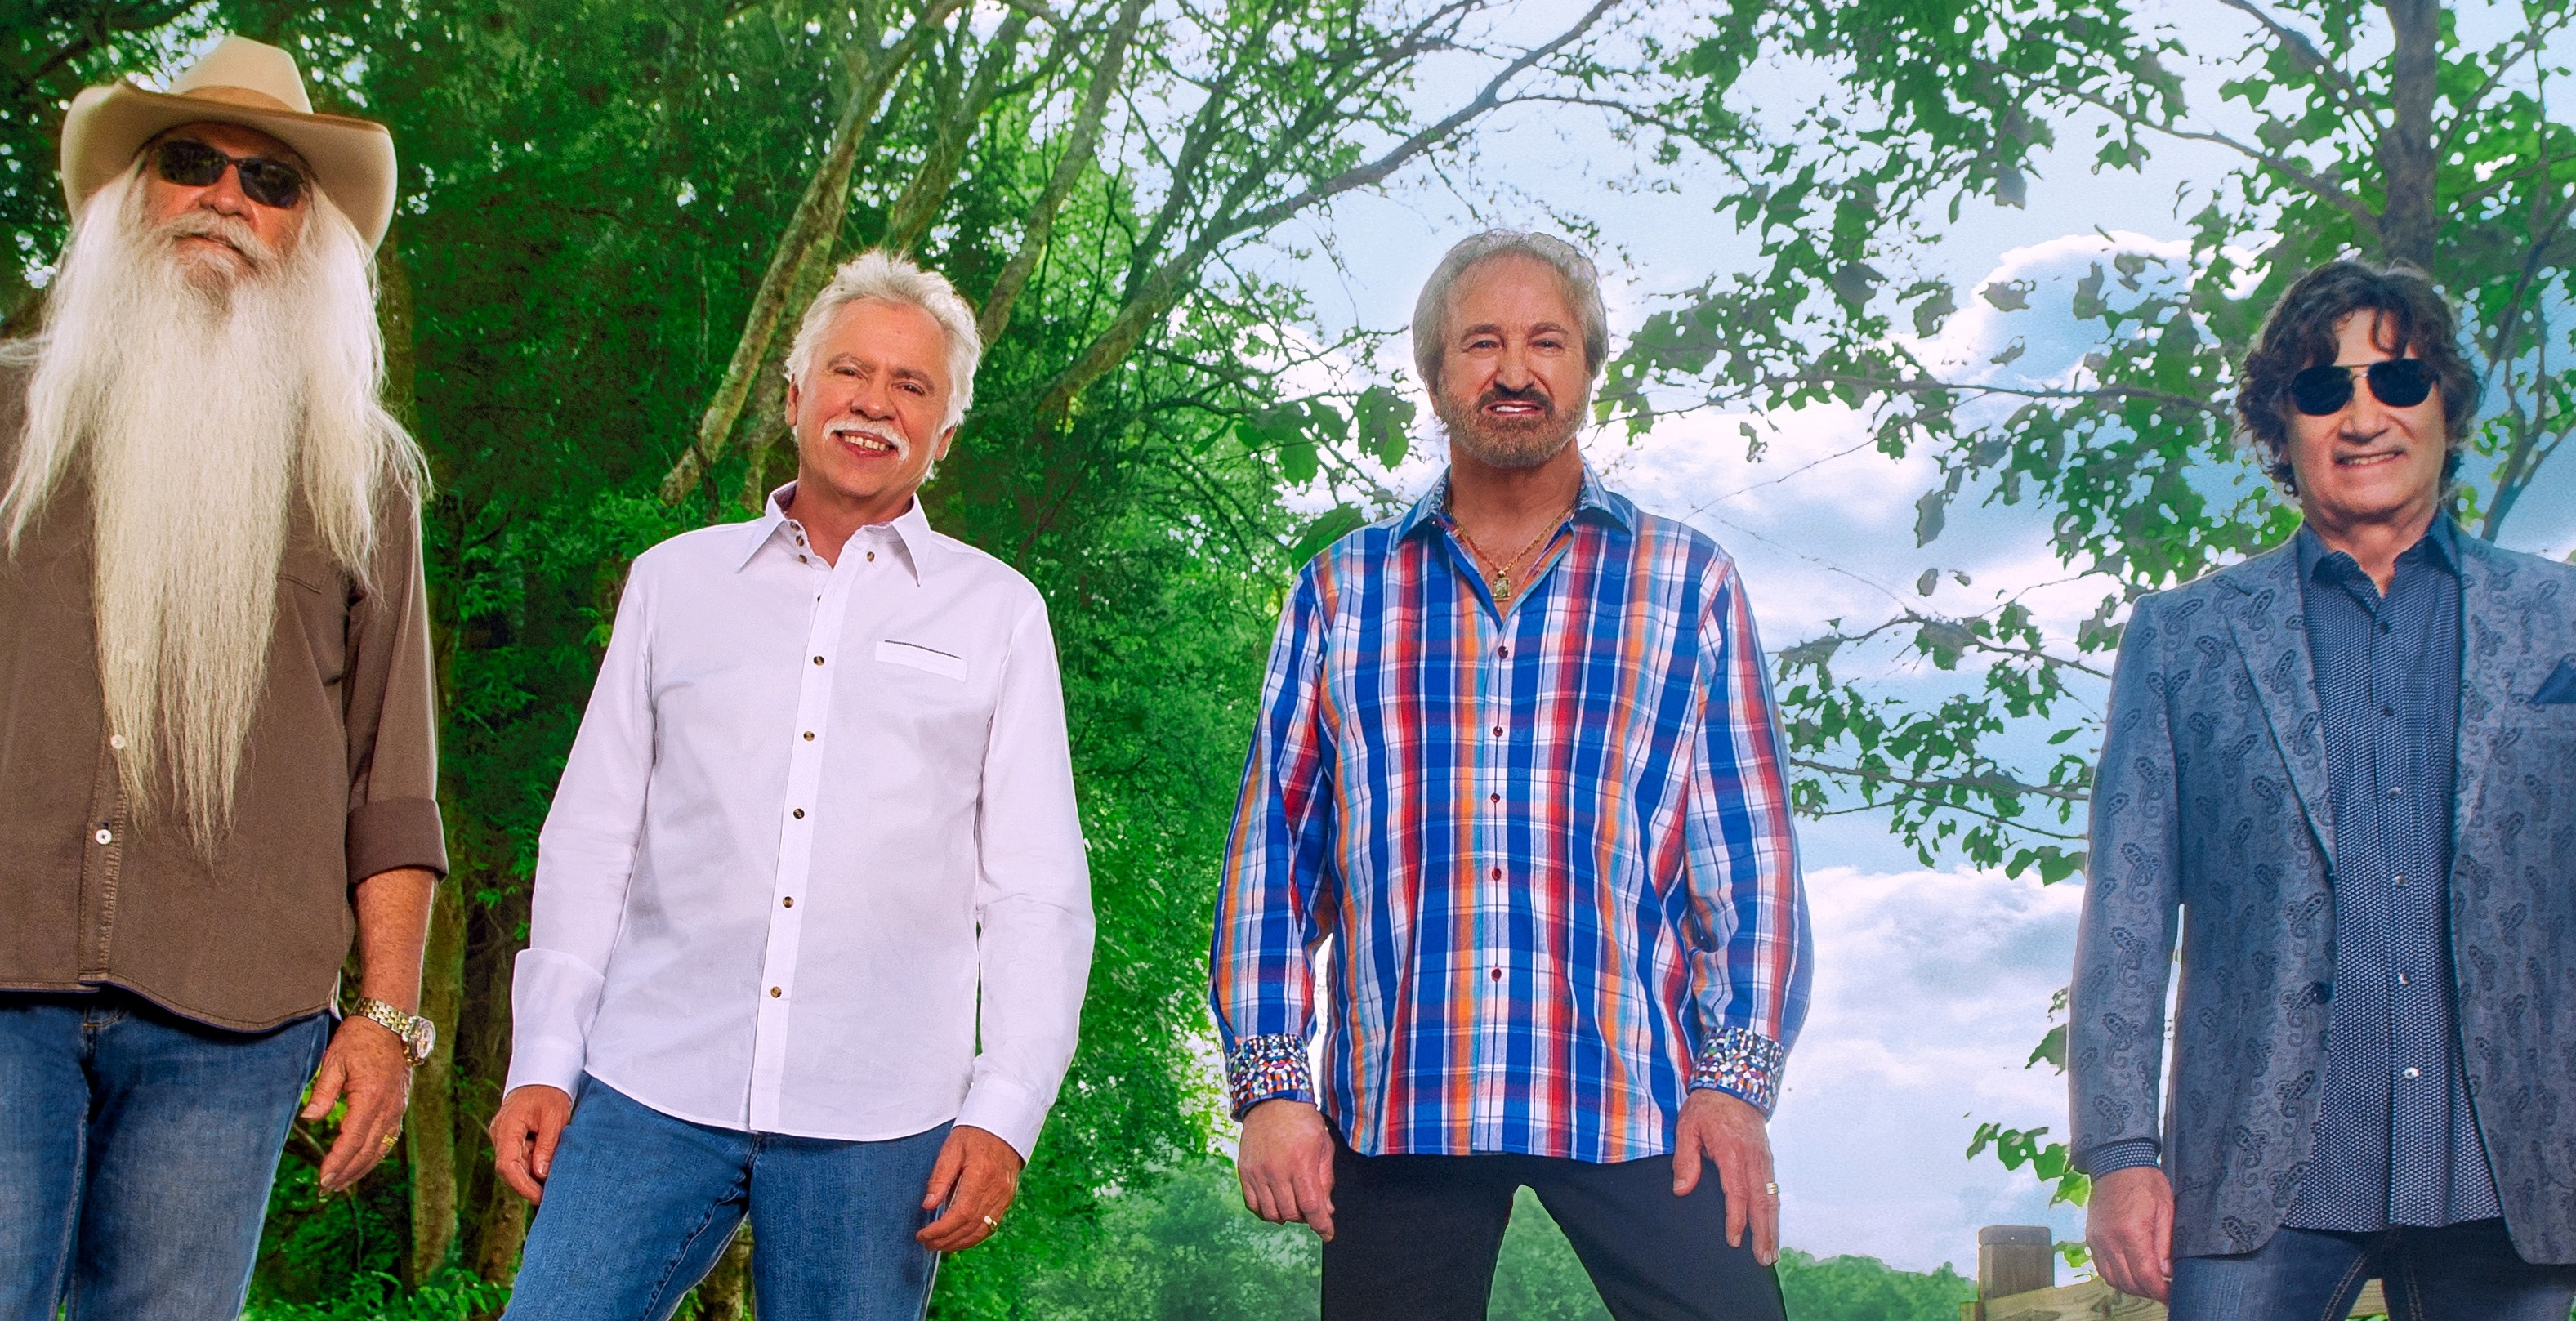 BT - An Evening with THE OAK RIDGE BOYS - August 11, 2019, doors 6:30pm